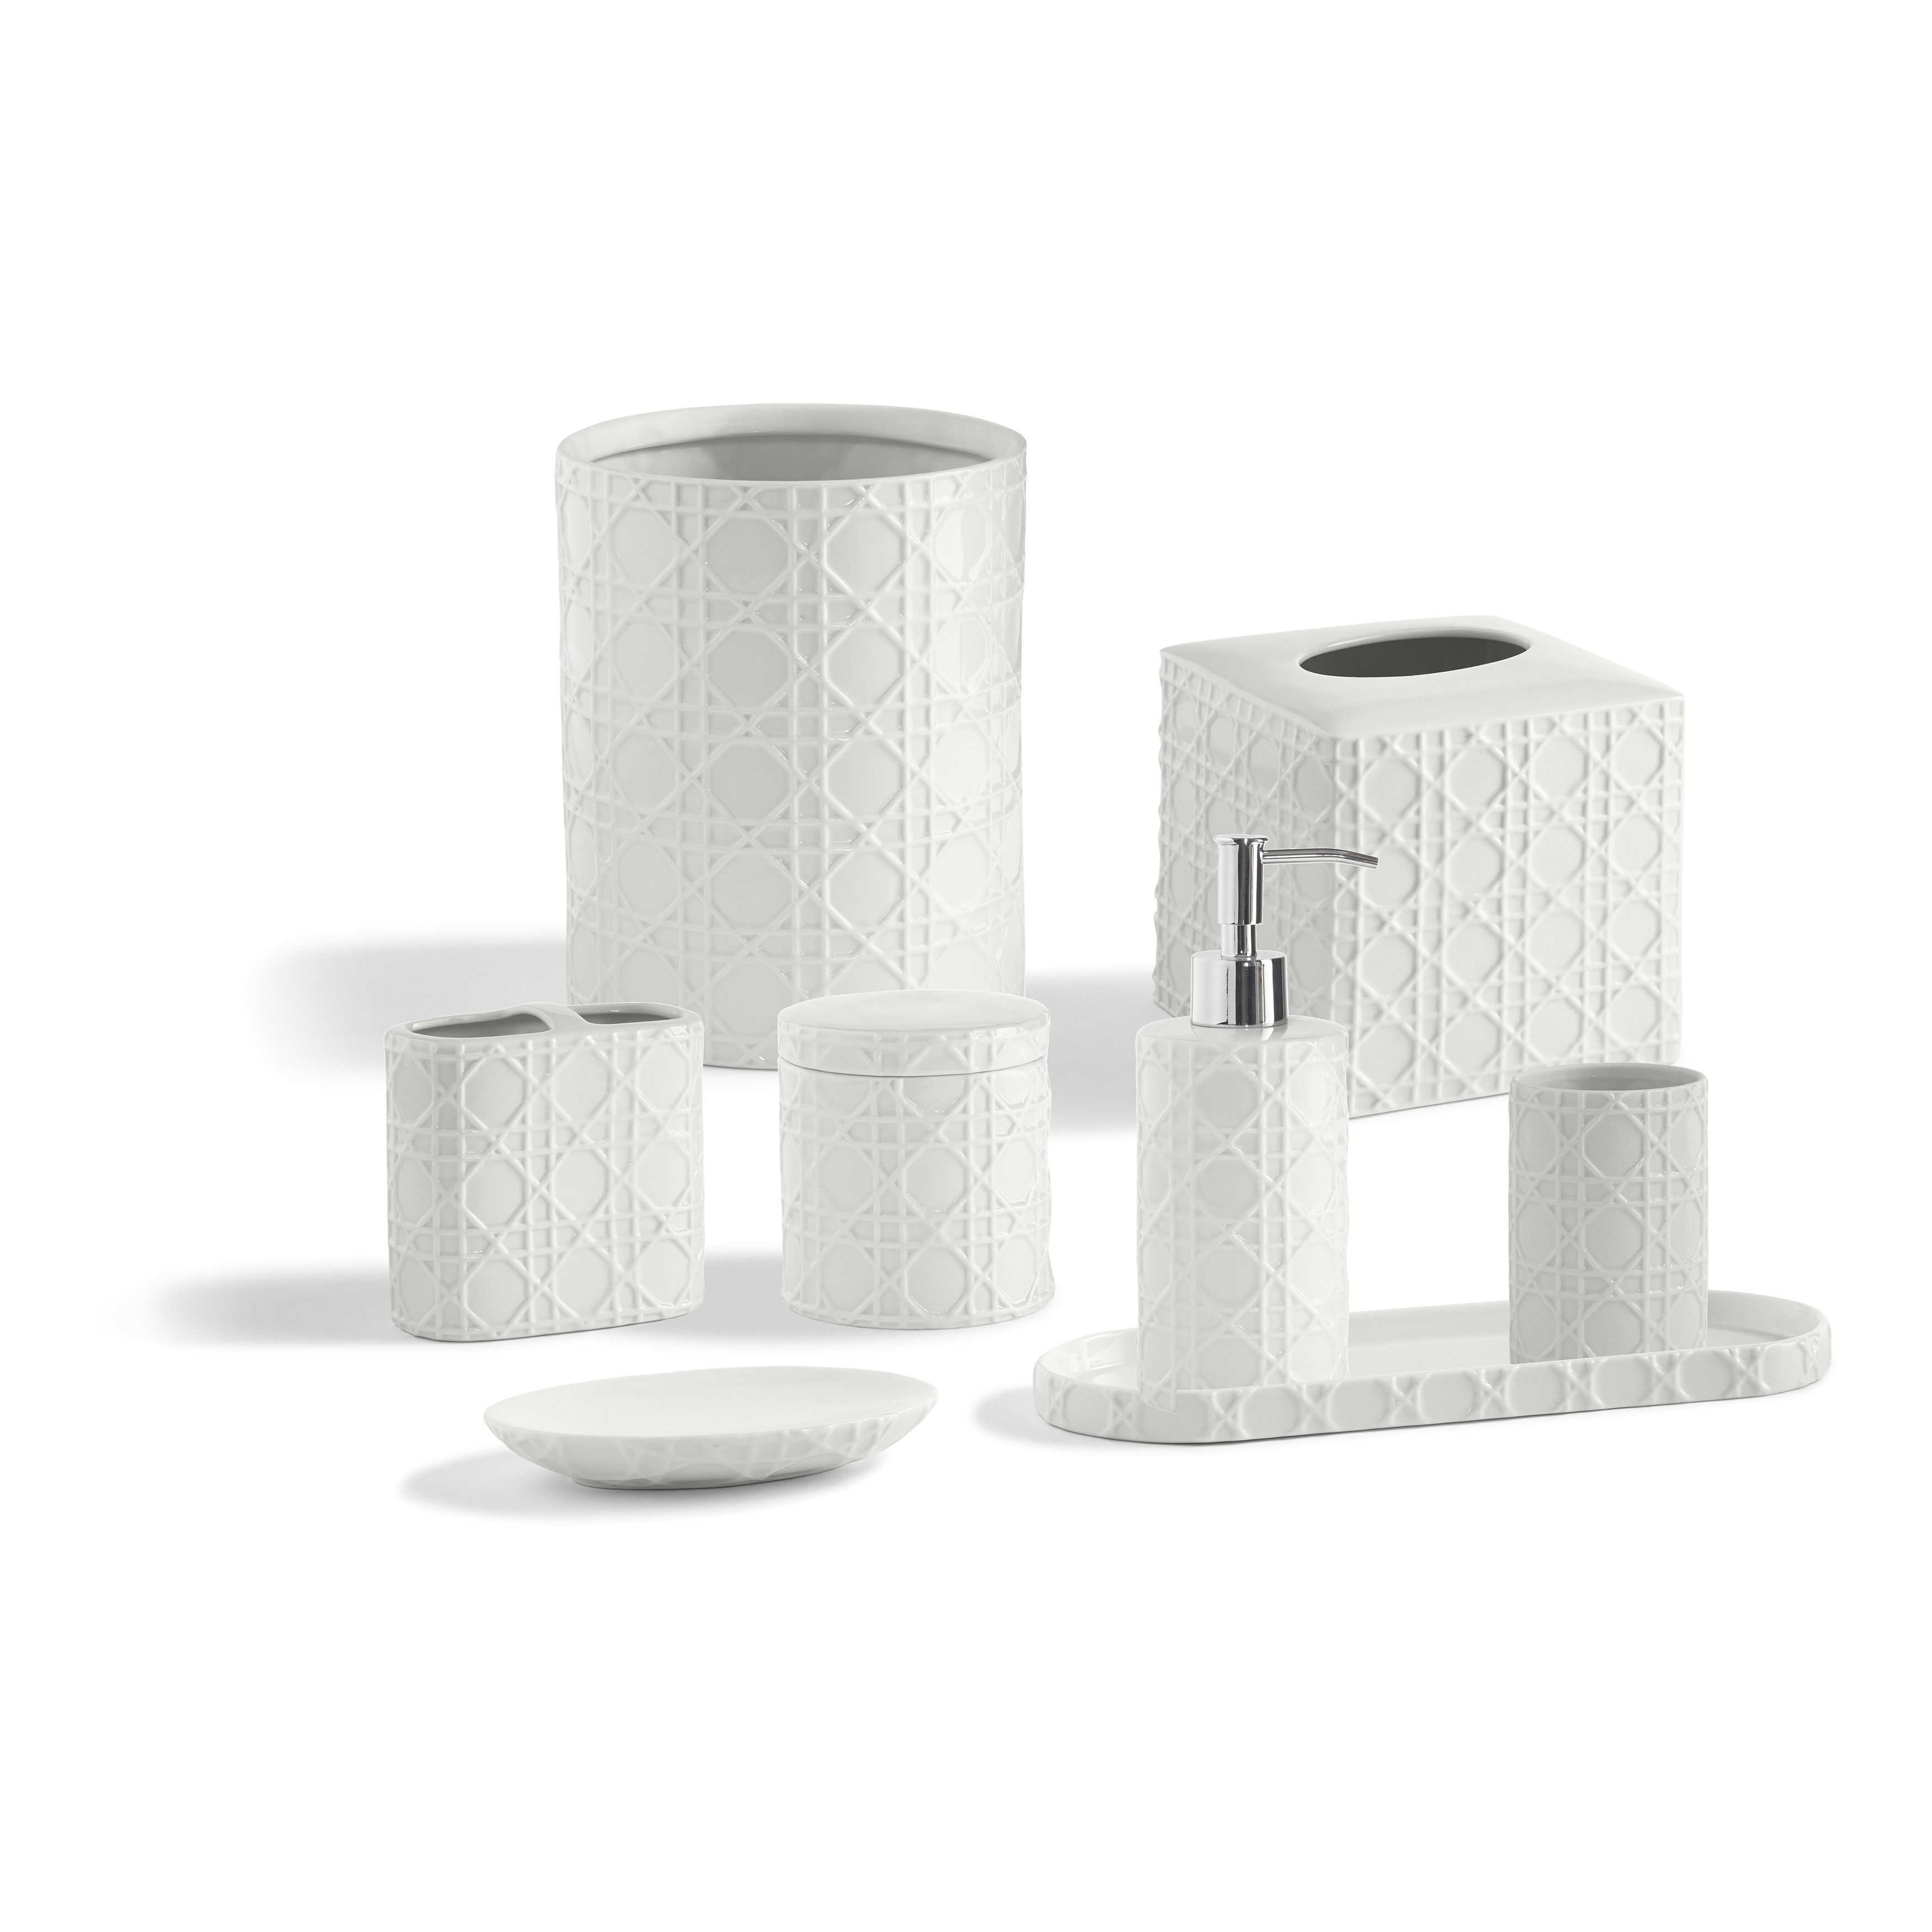 Palm Bathroom Accessory Collection | Products | Pinterest | Bathroom ...